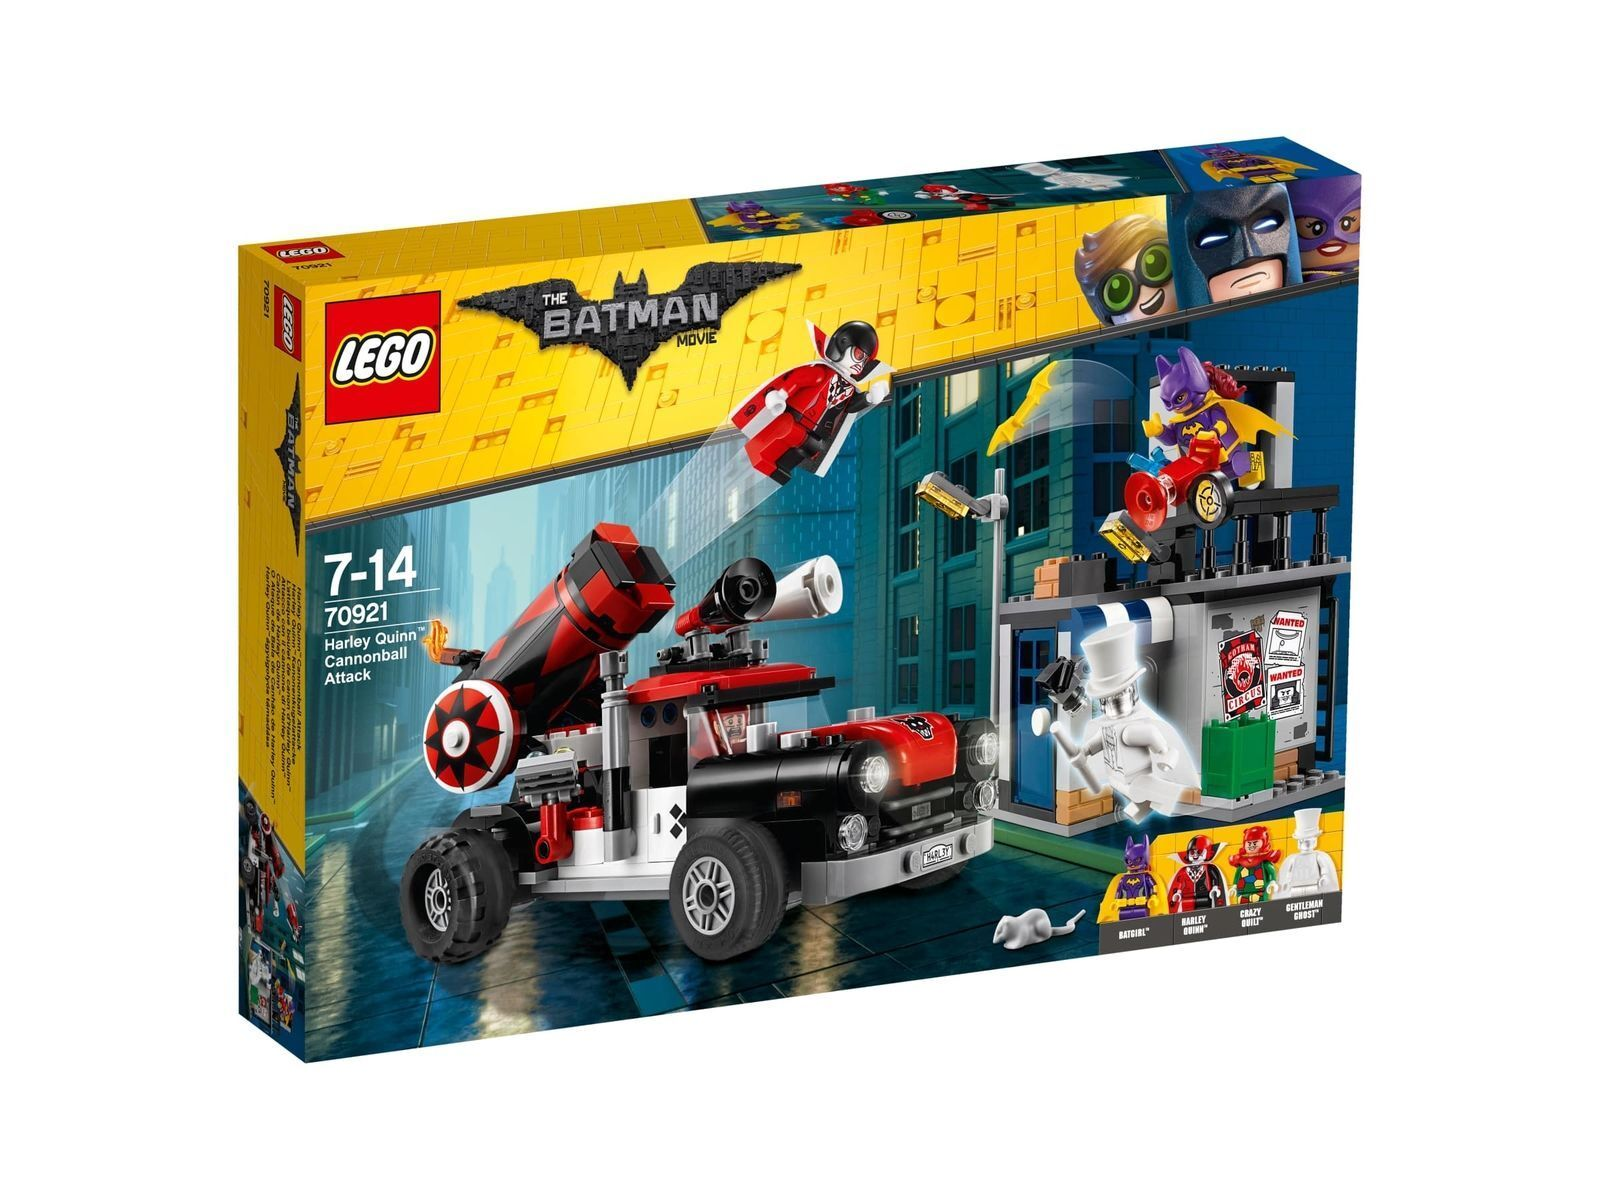 LEGO 70921-HARLEY QUINN palla di cannone attacco-the Batman movie 4 personaggio Set Nuovo